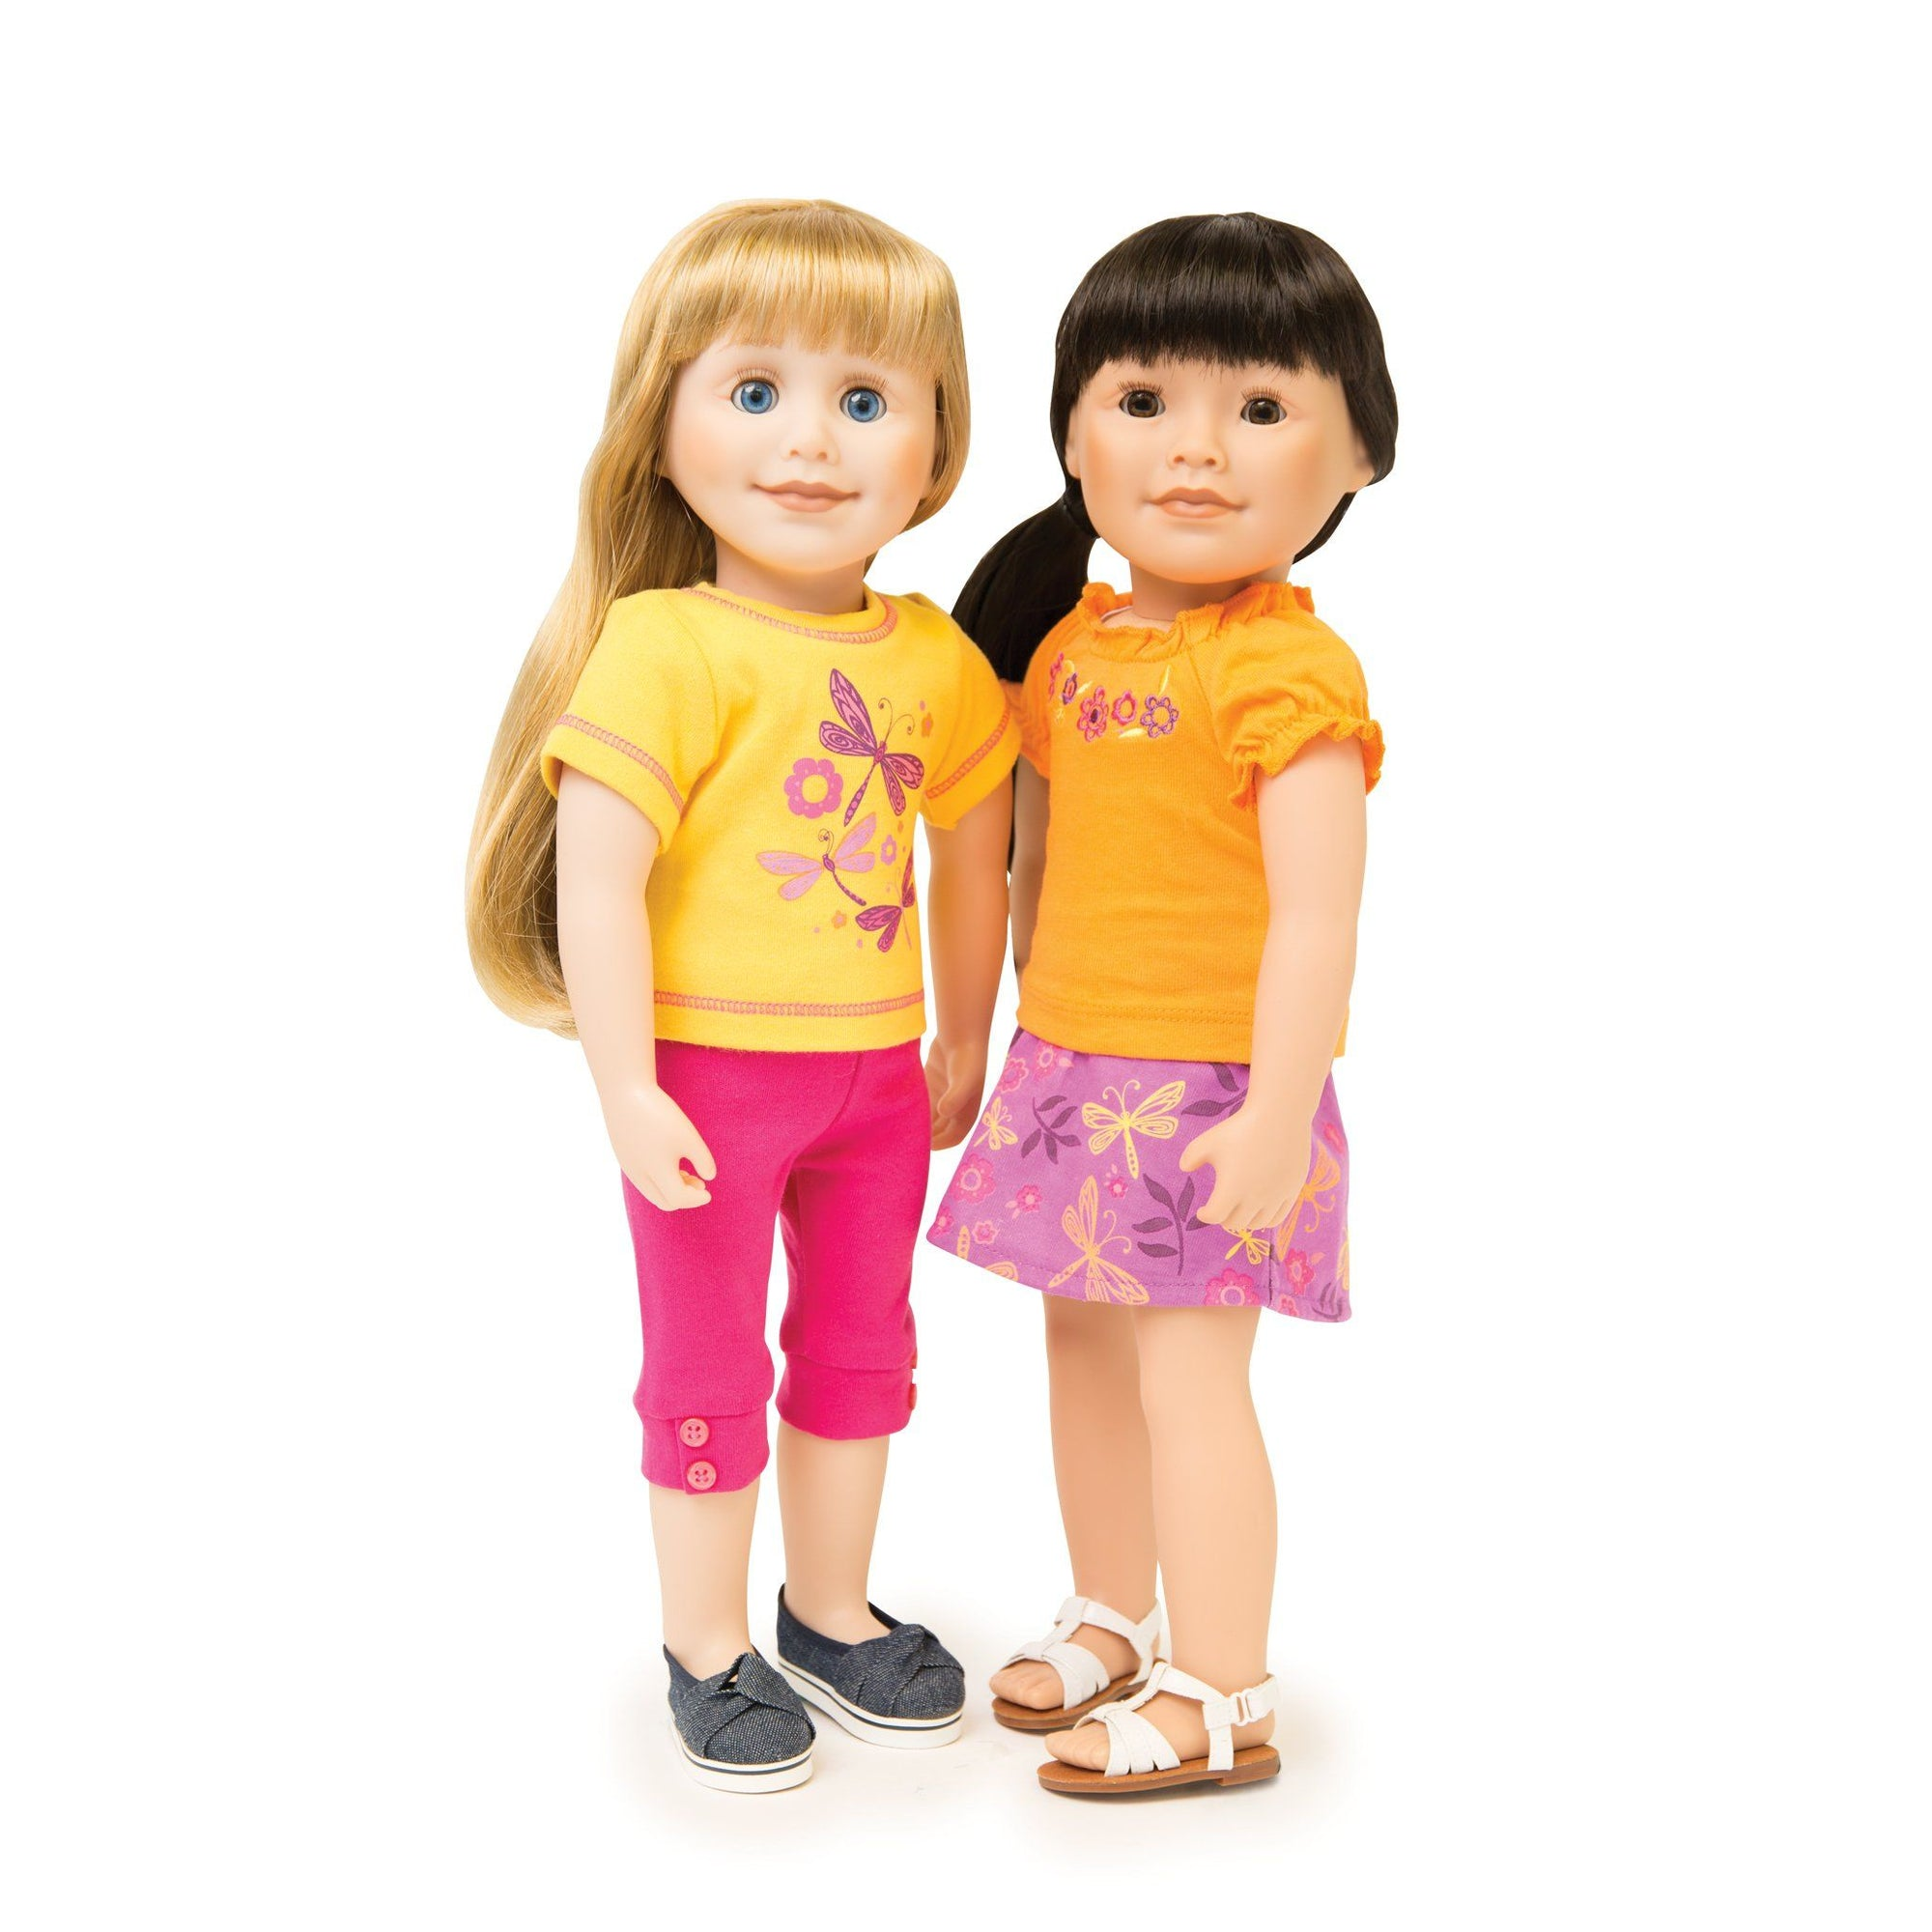 4 piece mix and match summer outfit for 18 inch dolls